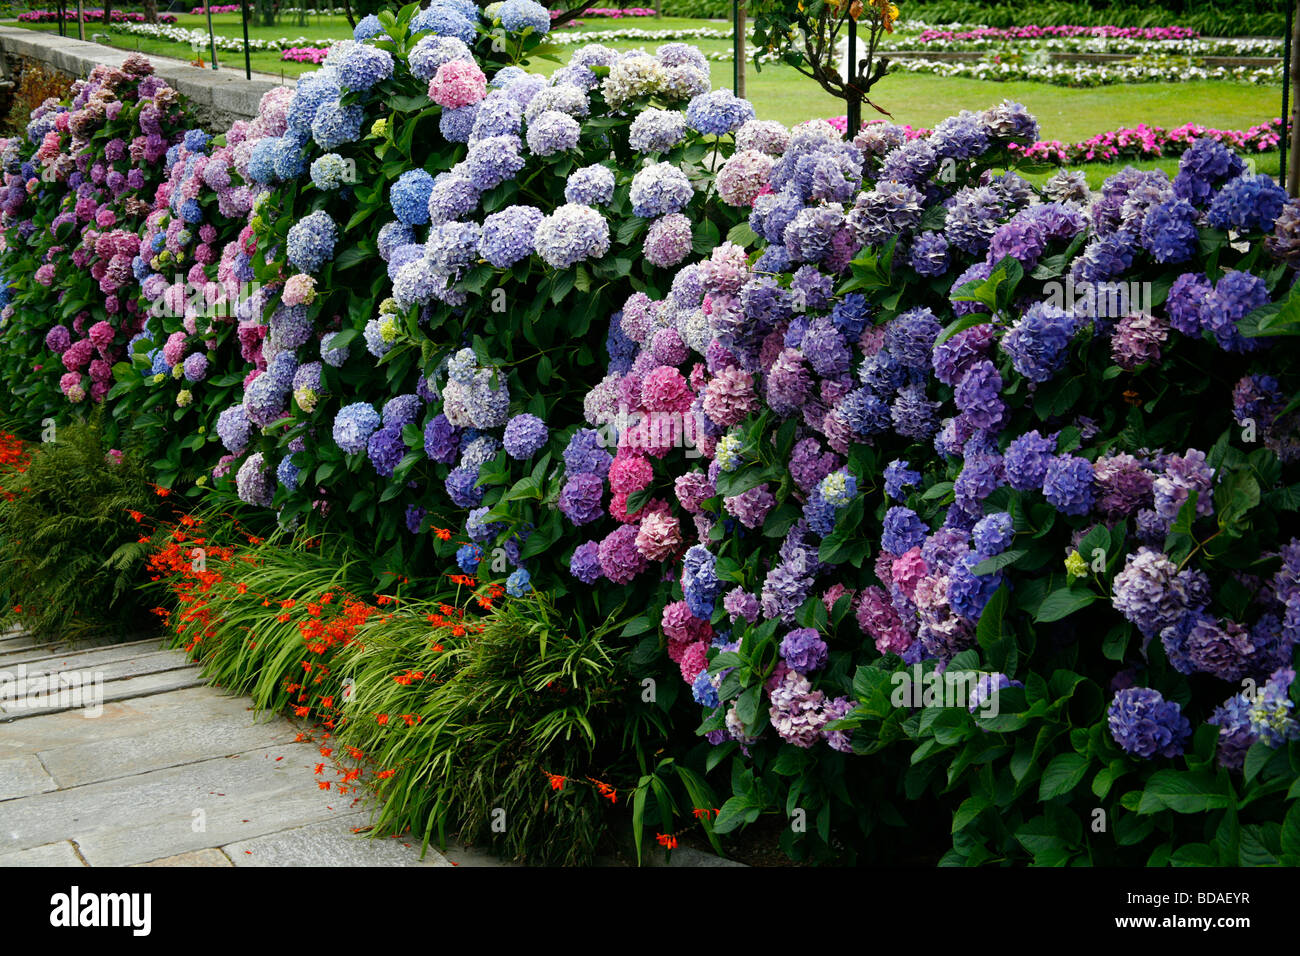 Colourful Hydrangea plants. - Stock Image